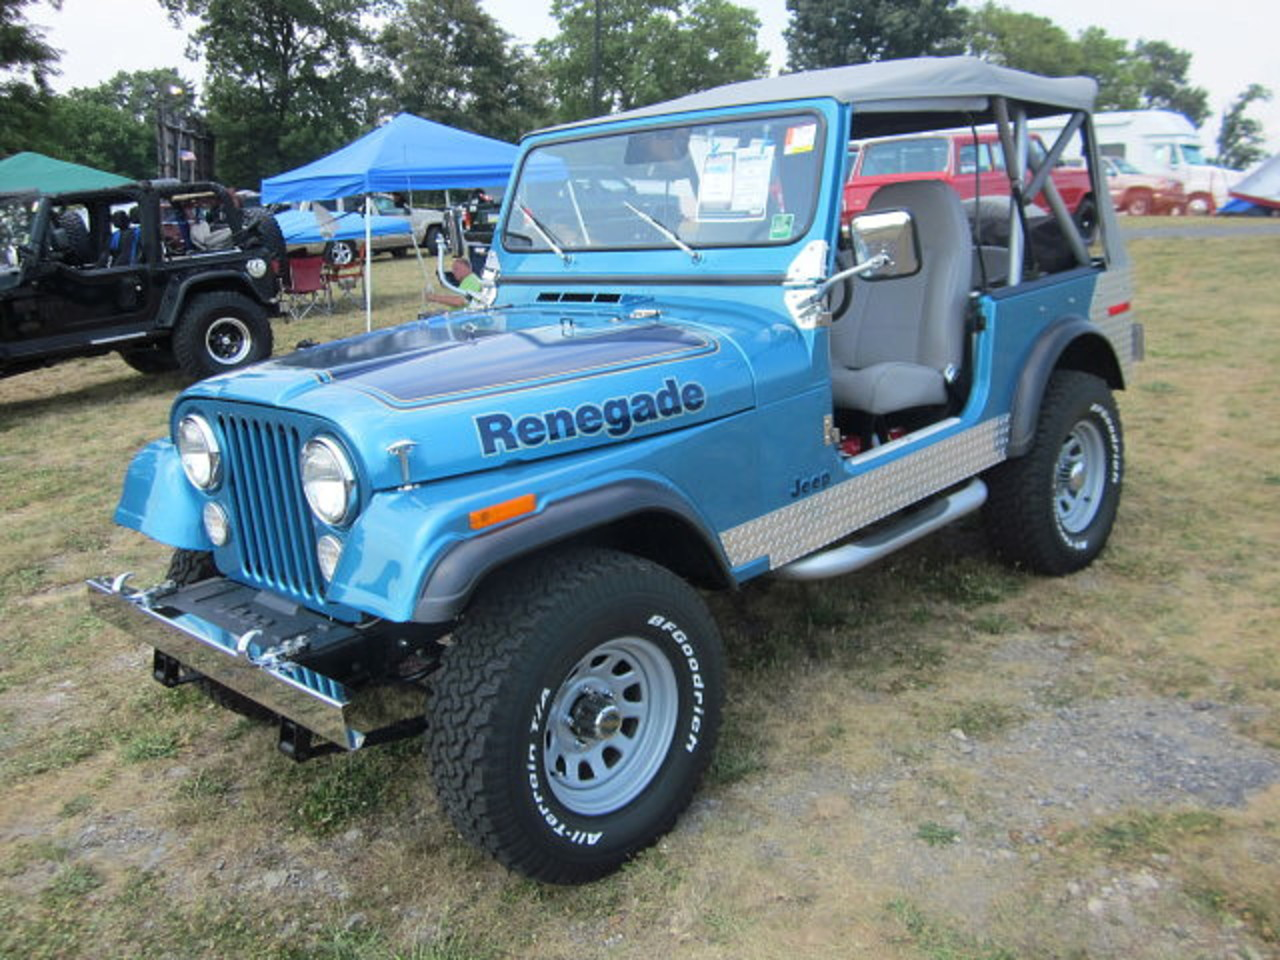 1979 Jeep CJ-7 Renegade | Flickr - Photo Sharing!